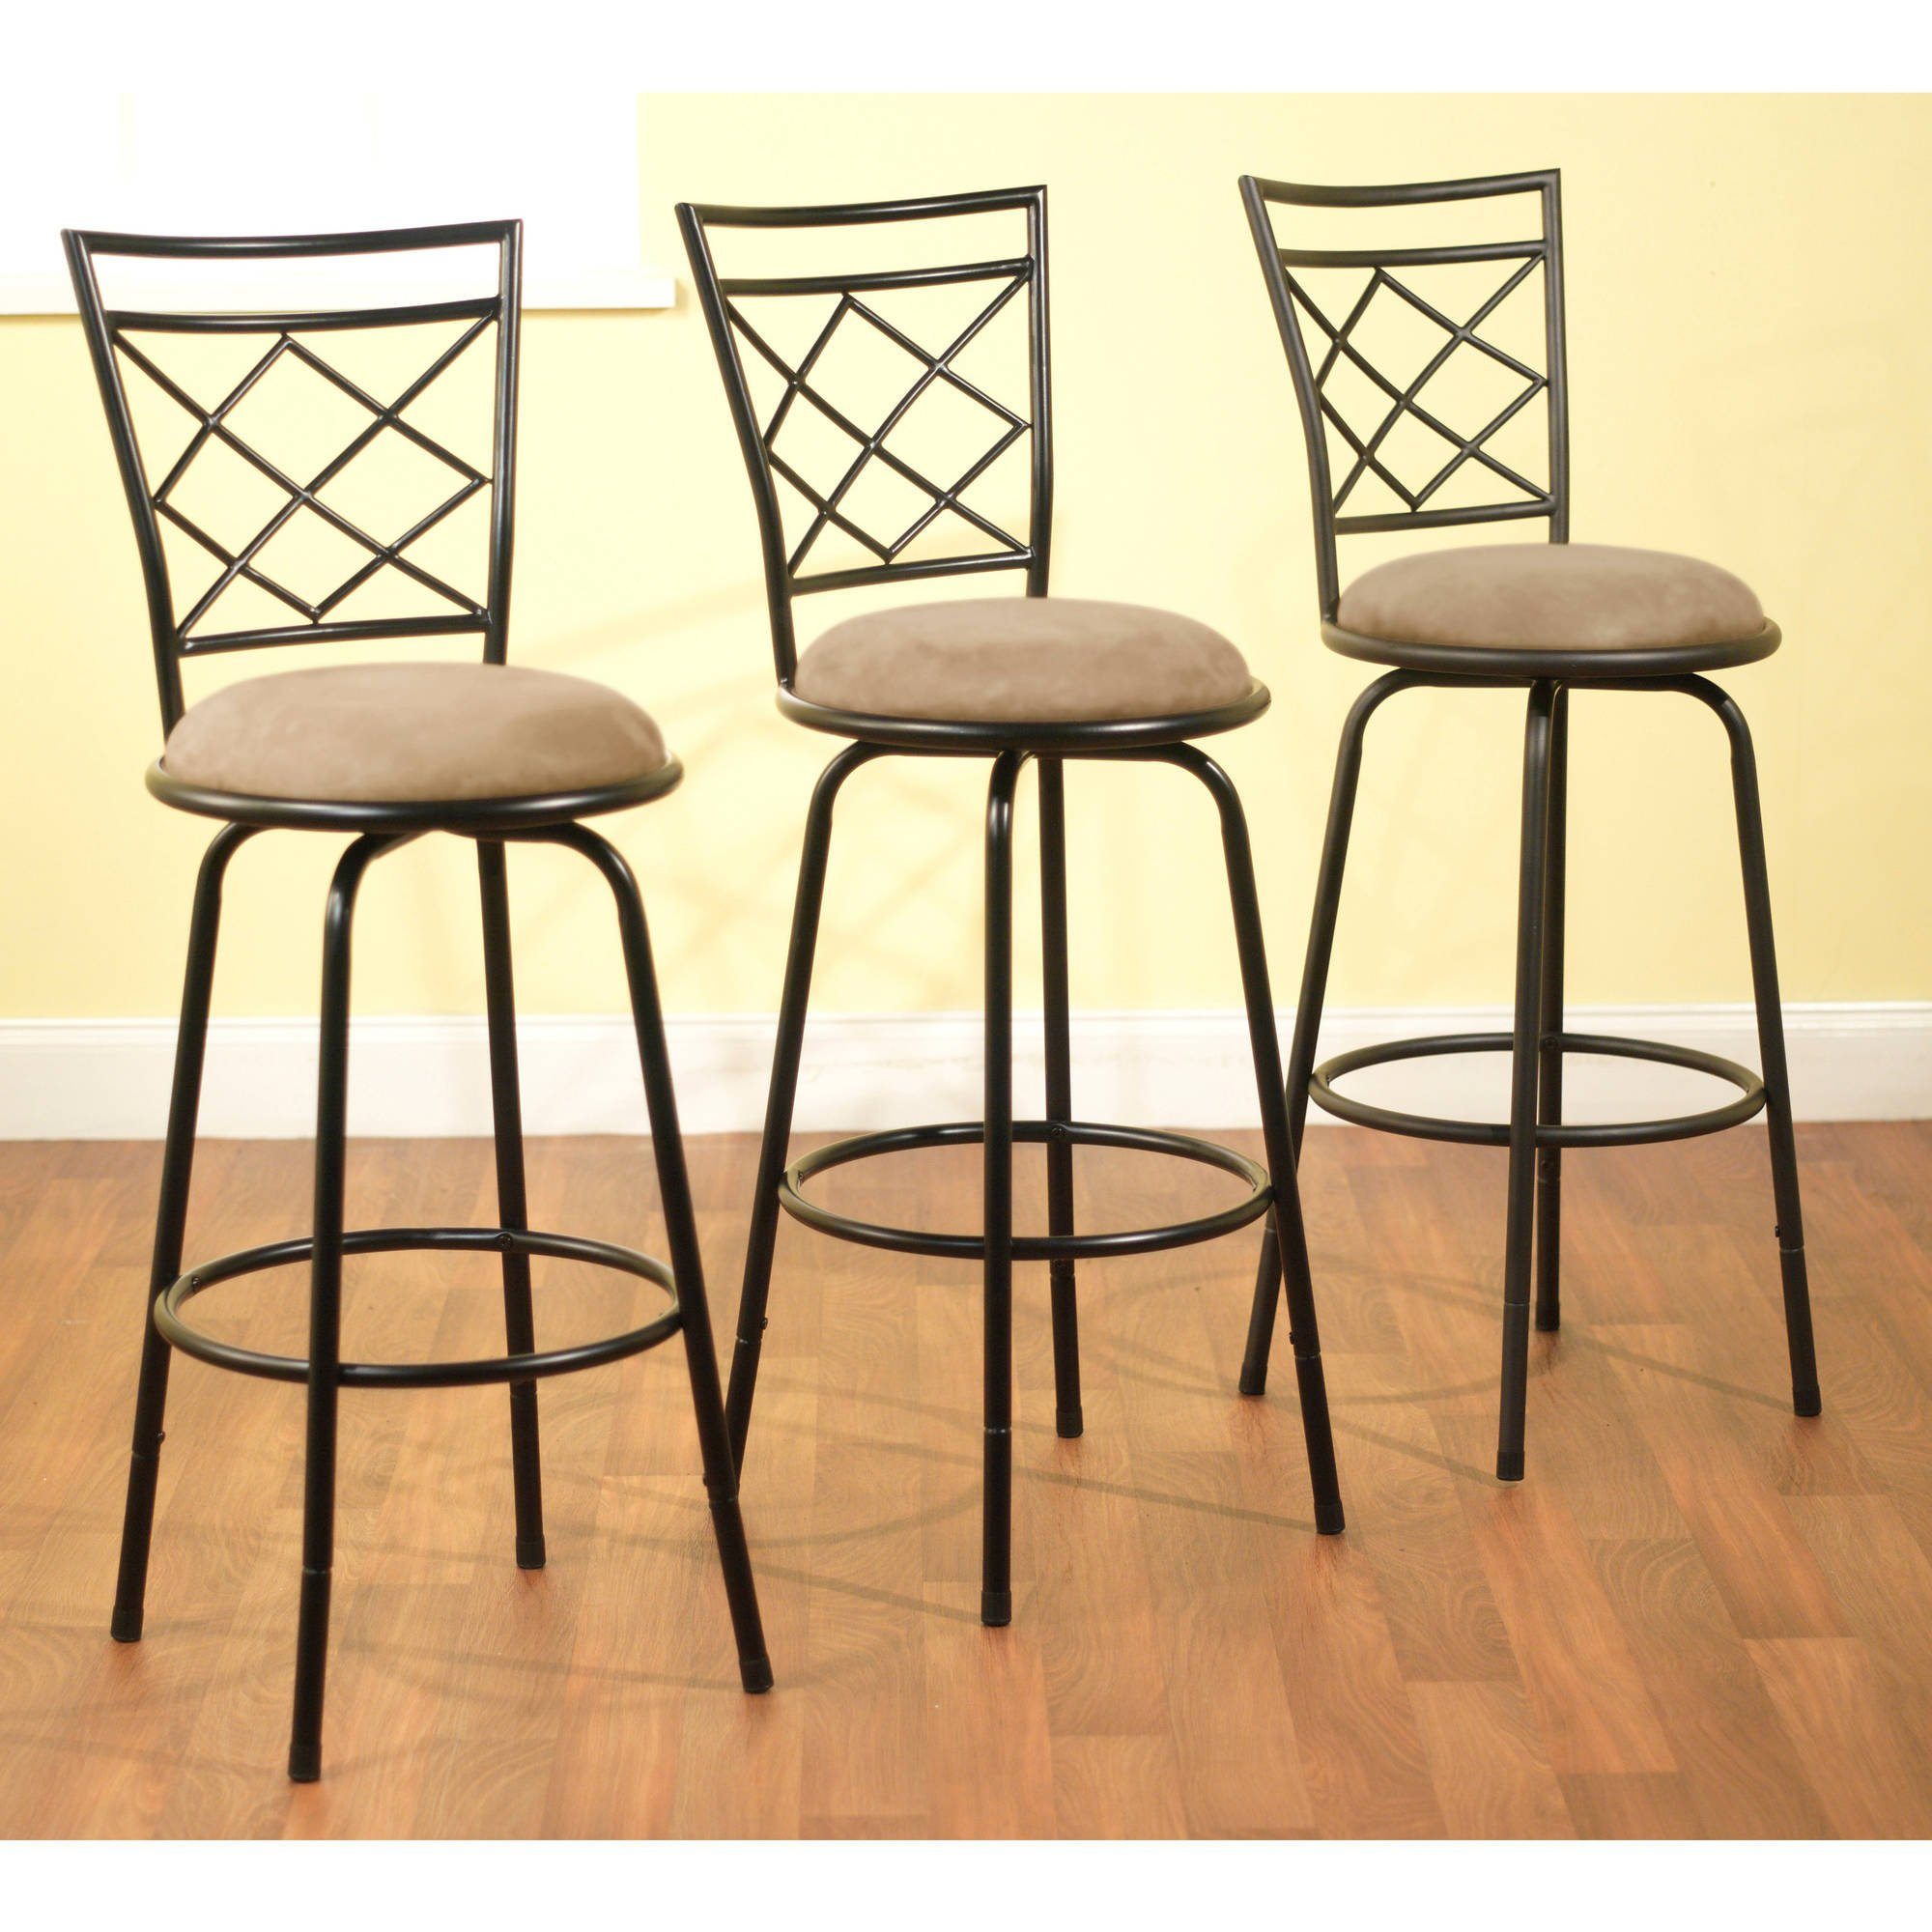 Cross-back Design 3-Piece Avery Ajustable Height Barstool, Multiple Colors (Black)